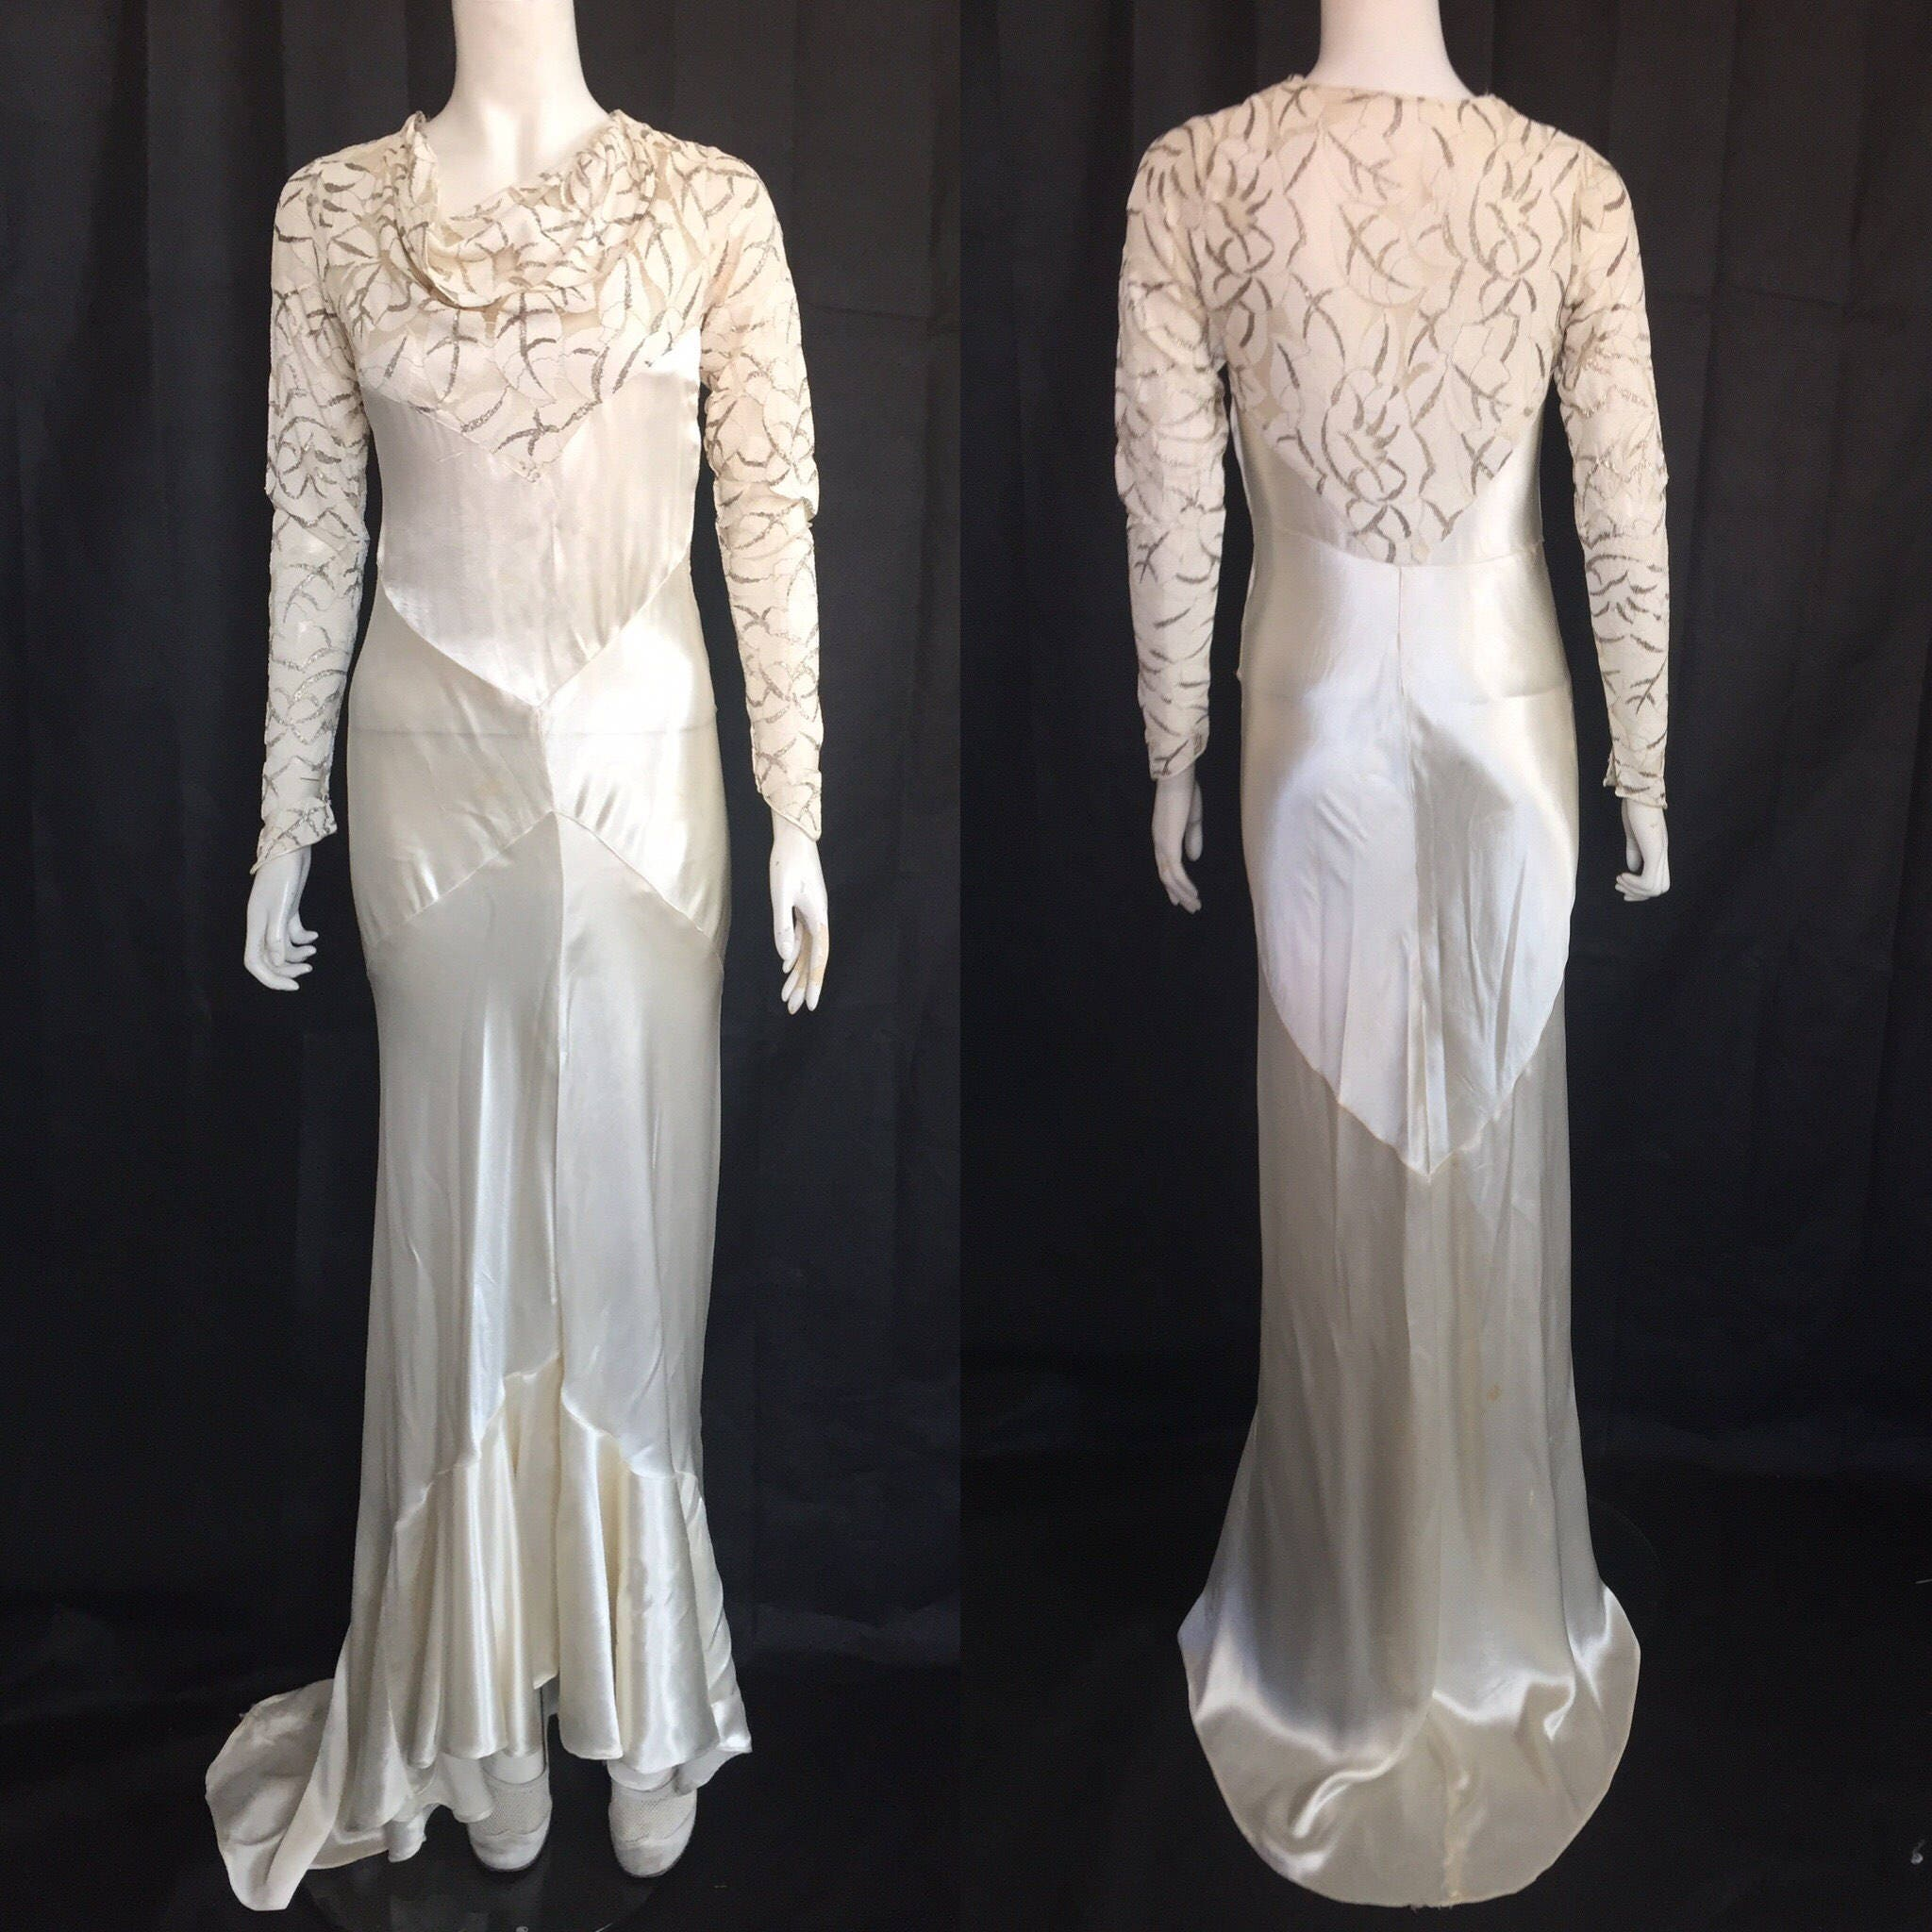 Cowl Neck Bridal Gown: 1930s Bias Cut Wedding Dress With Cowl Neck